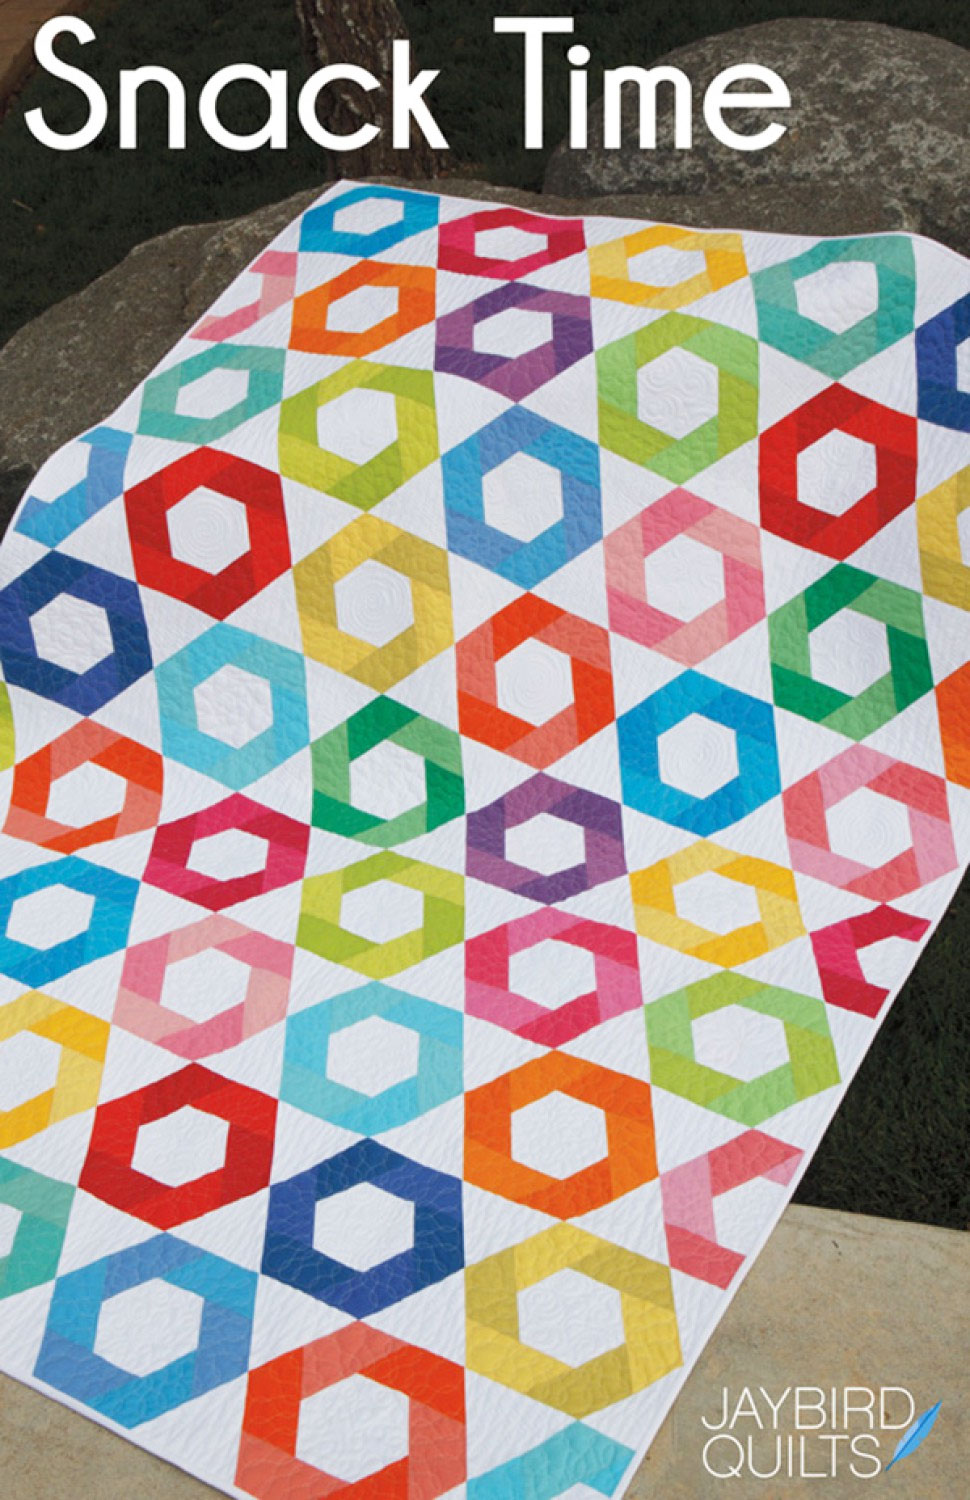 Snack Time Quilt Pattern From Jaybird Quilts